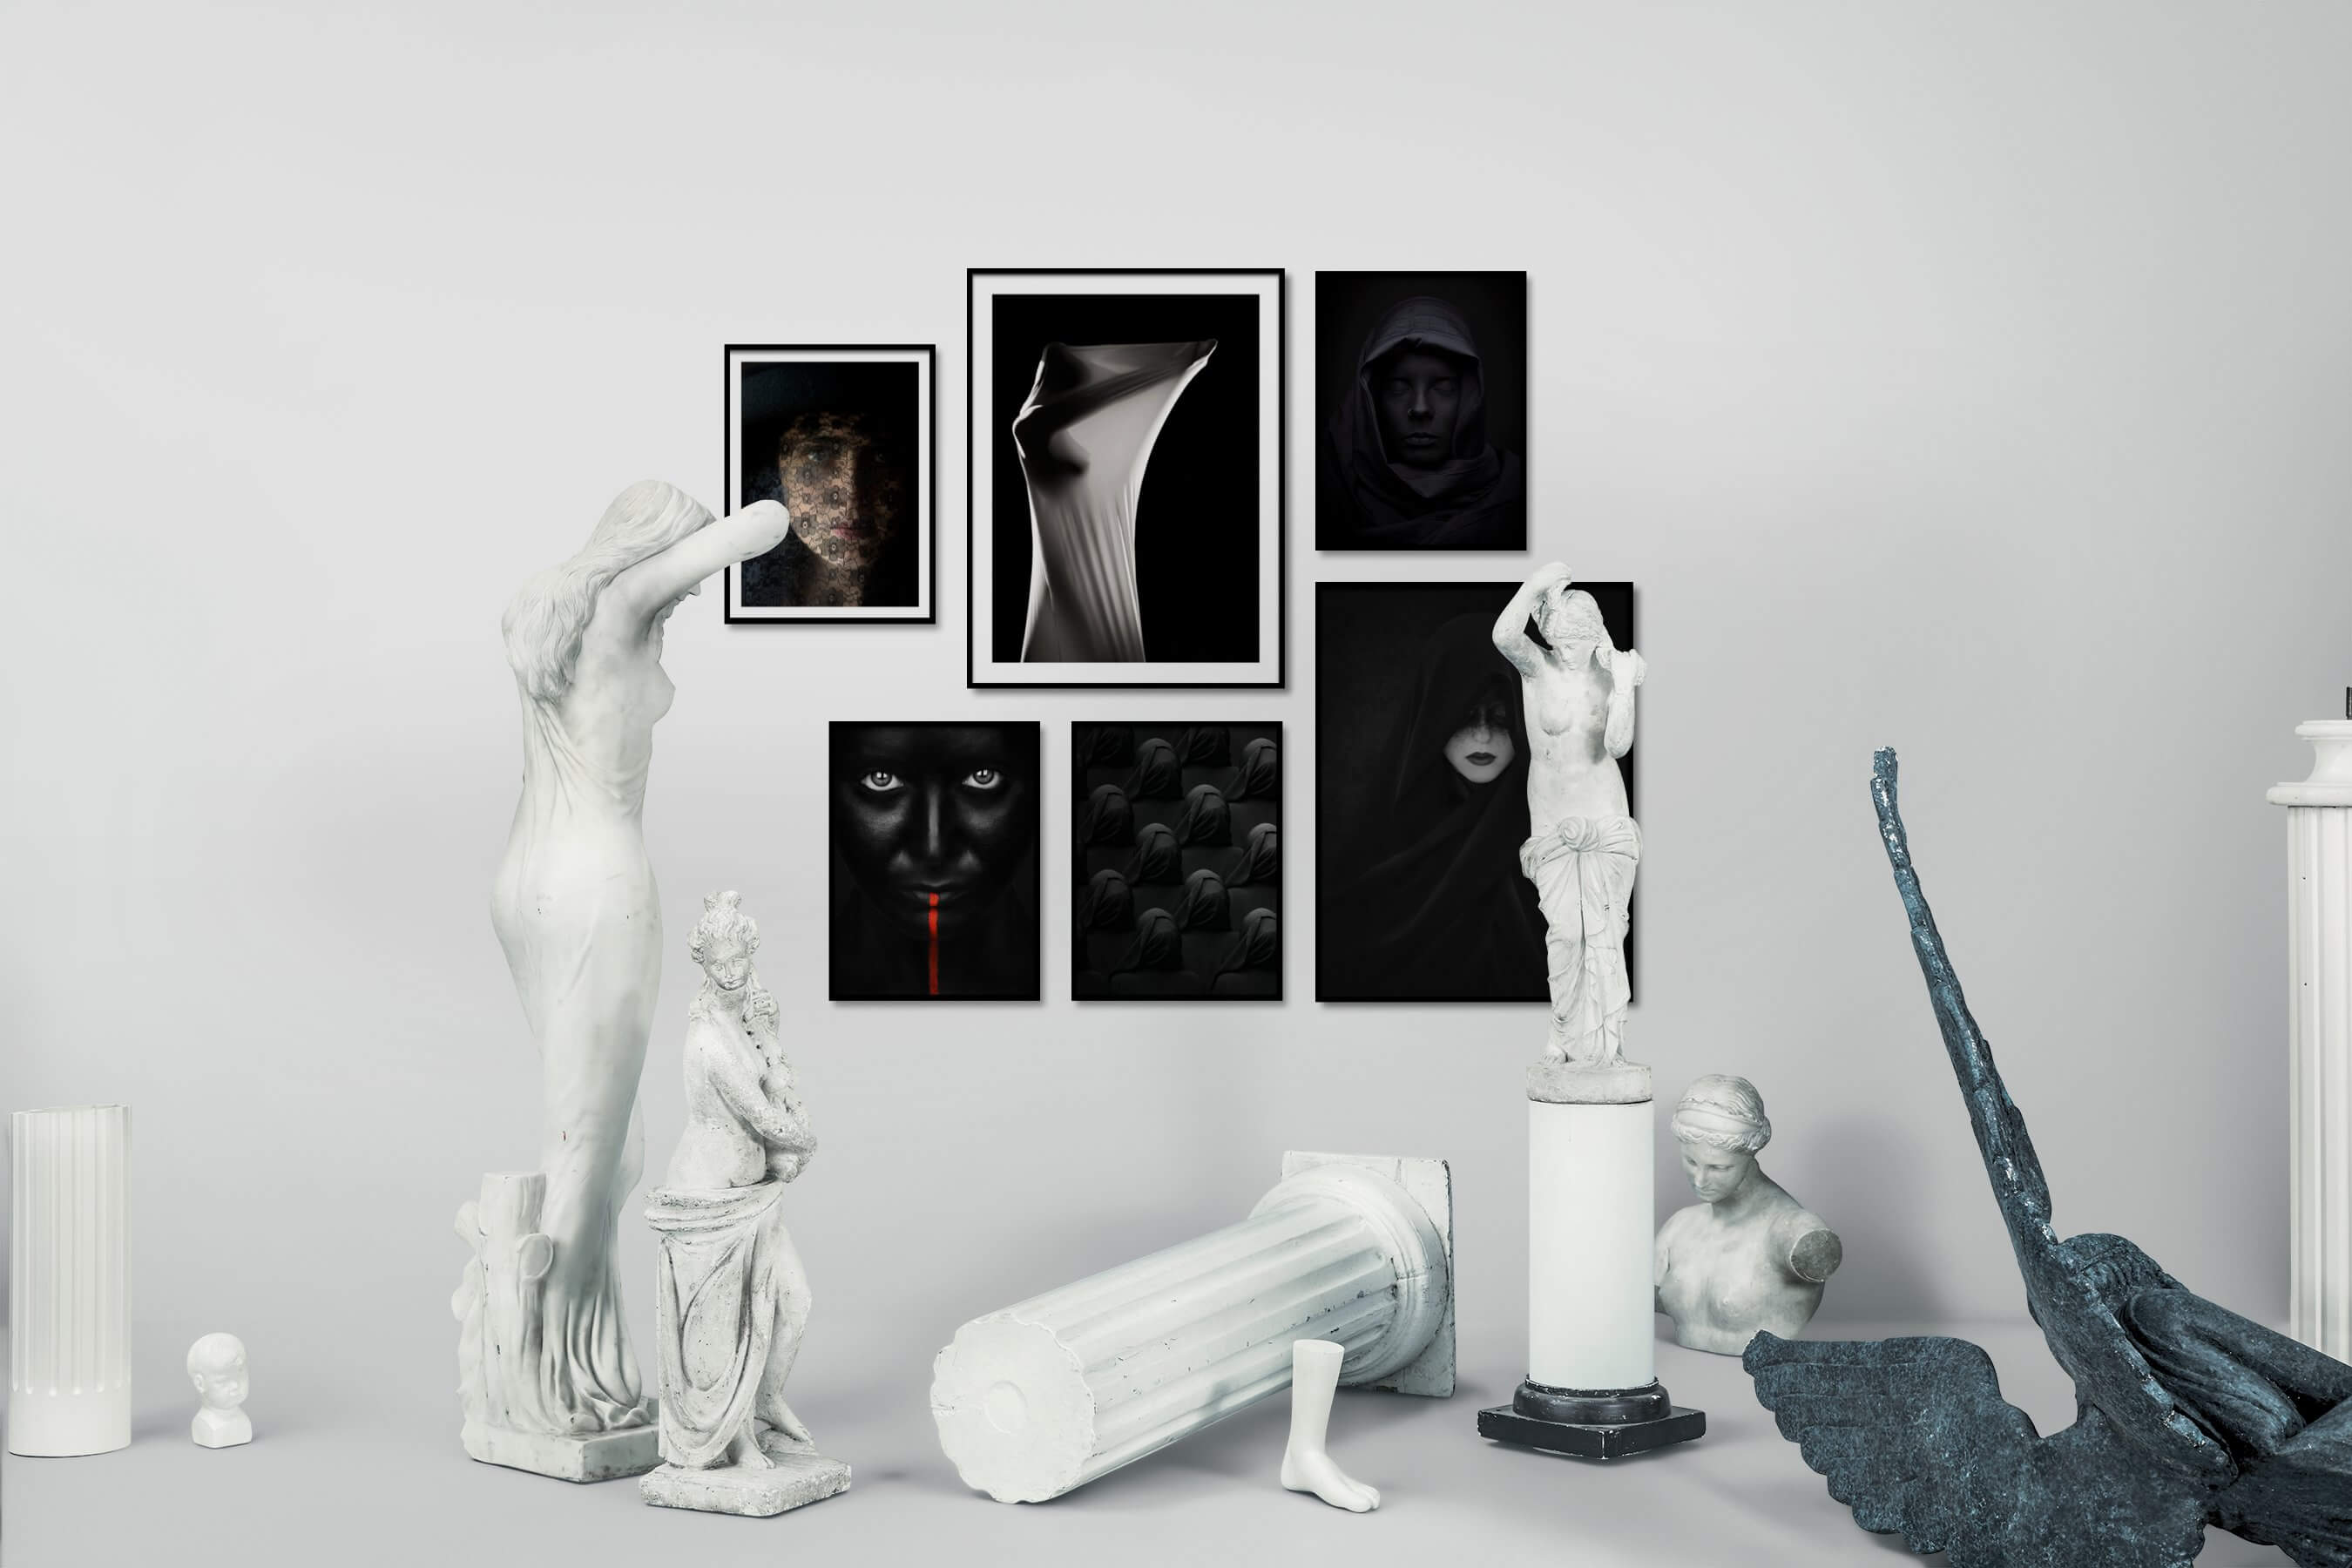 Gallery wall idea with six framed pictures arranged on a wall depicting Fashion & Beauty, For the Moderate, Black & White, For the Minimalist, Bold, Dark Tones, Artsy, and For the Maximalist